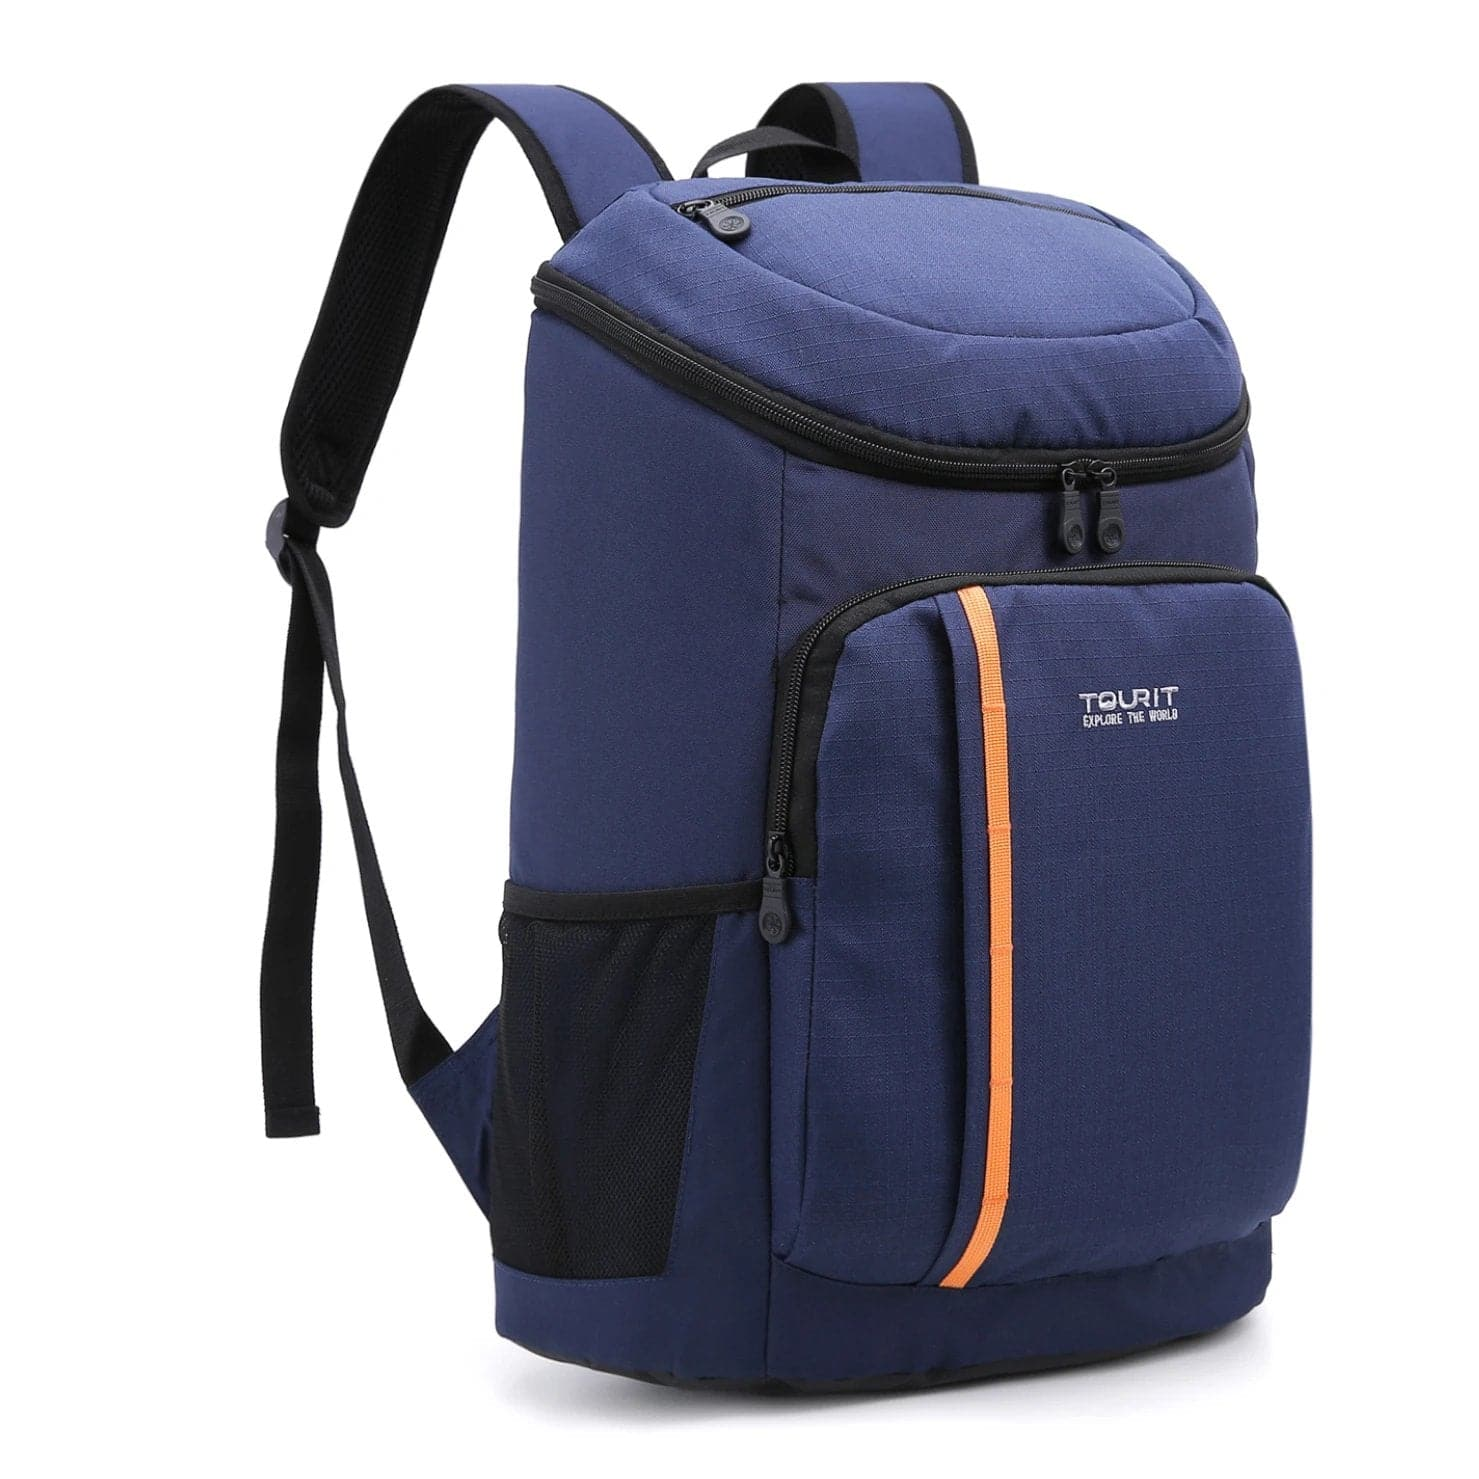 7cd5b5dcc634 Insulated Cooler Backpack 28 Cans with Cooler Leak-proof Soft Cooler Bag for  Men Women